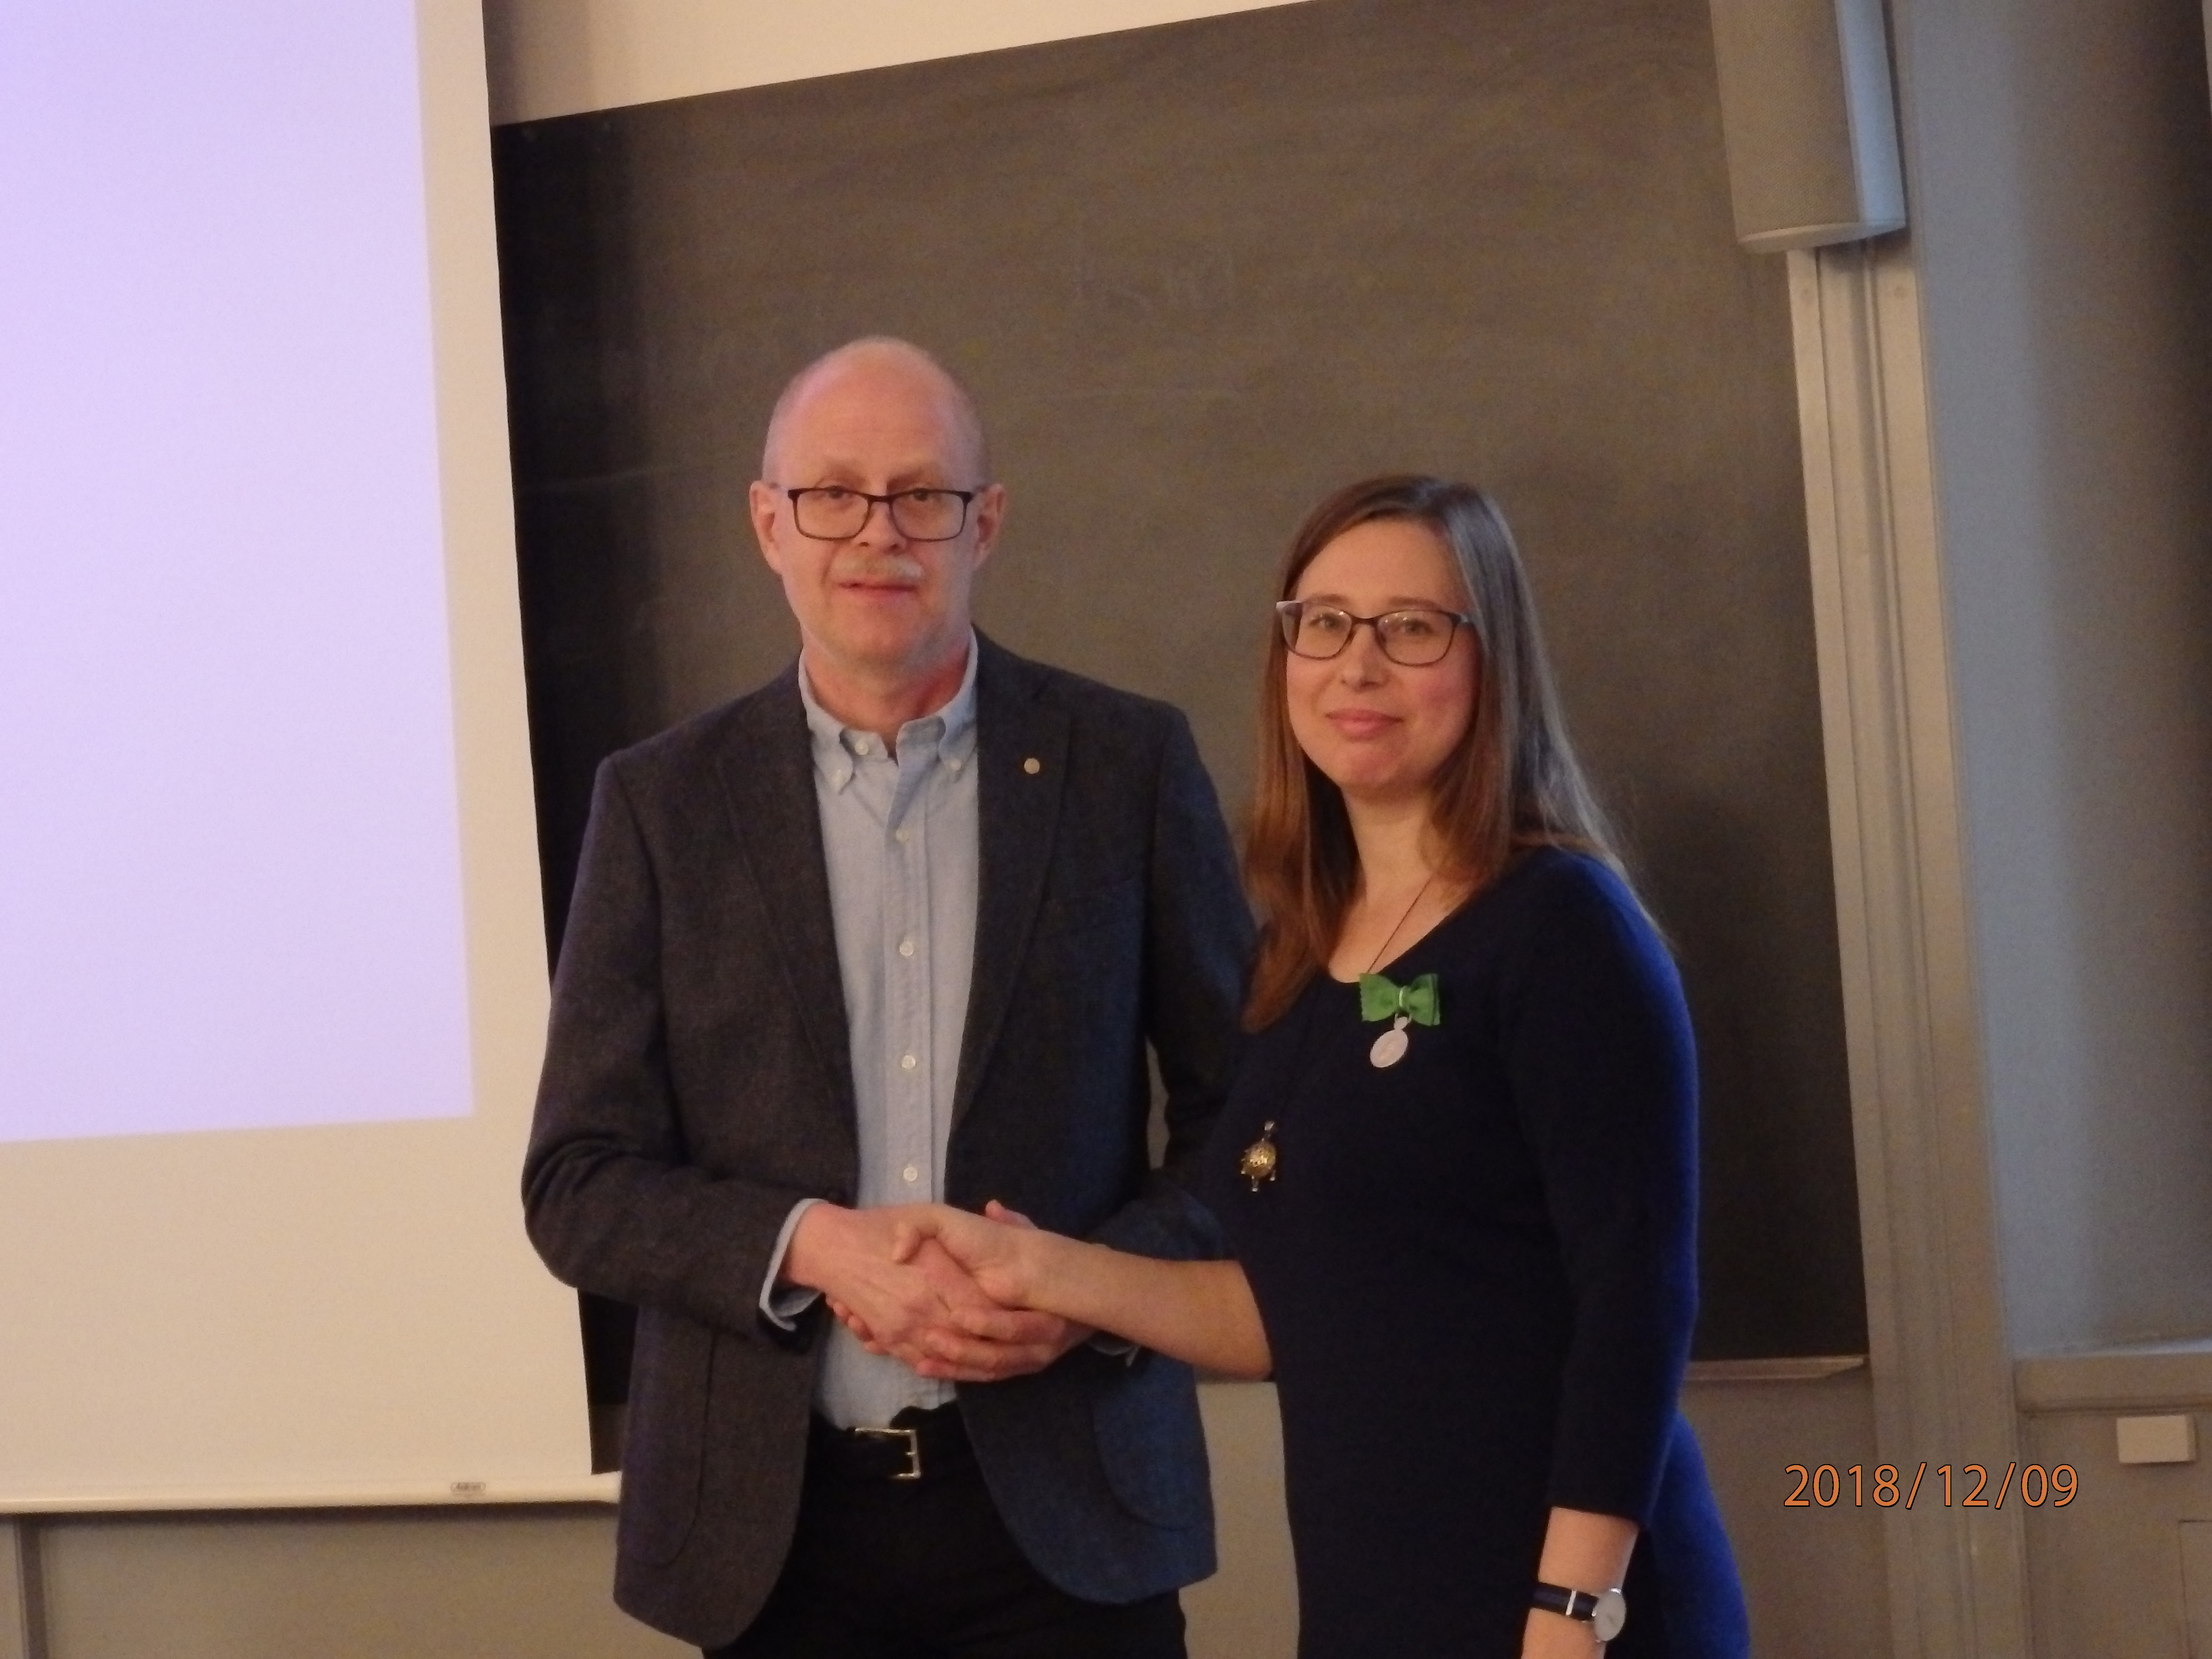 Chairman of the Swedish numismatic society Mr Jan-Olof Björk and author of the book Julia Krasnobaeva